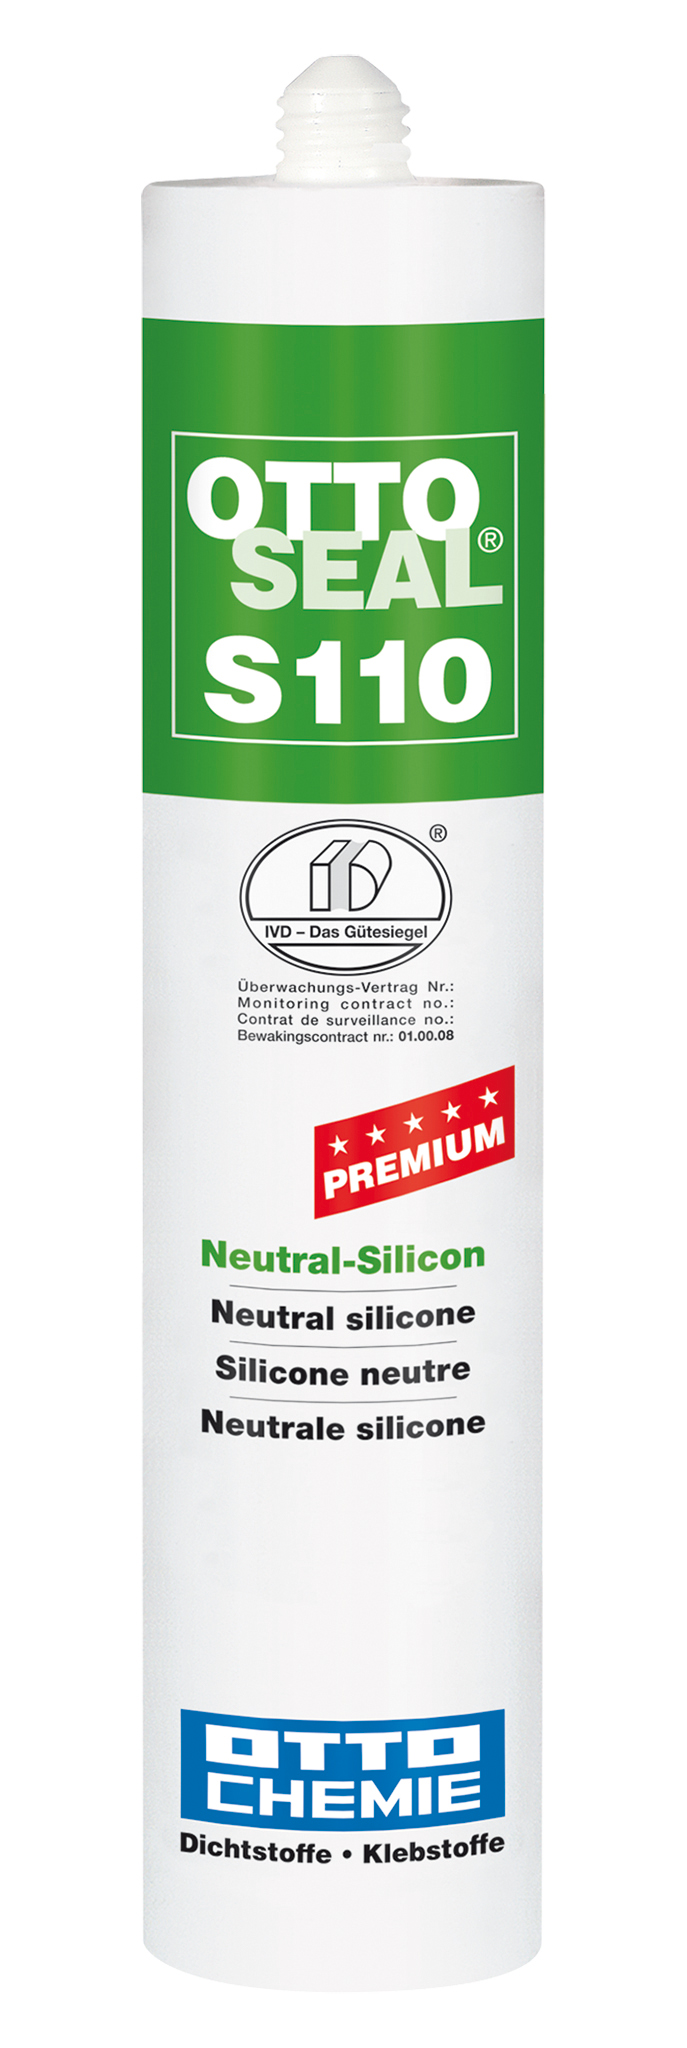 Joint sealing silicone ochre brown 310ml